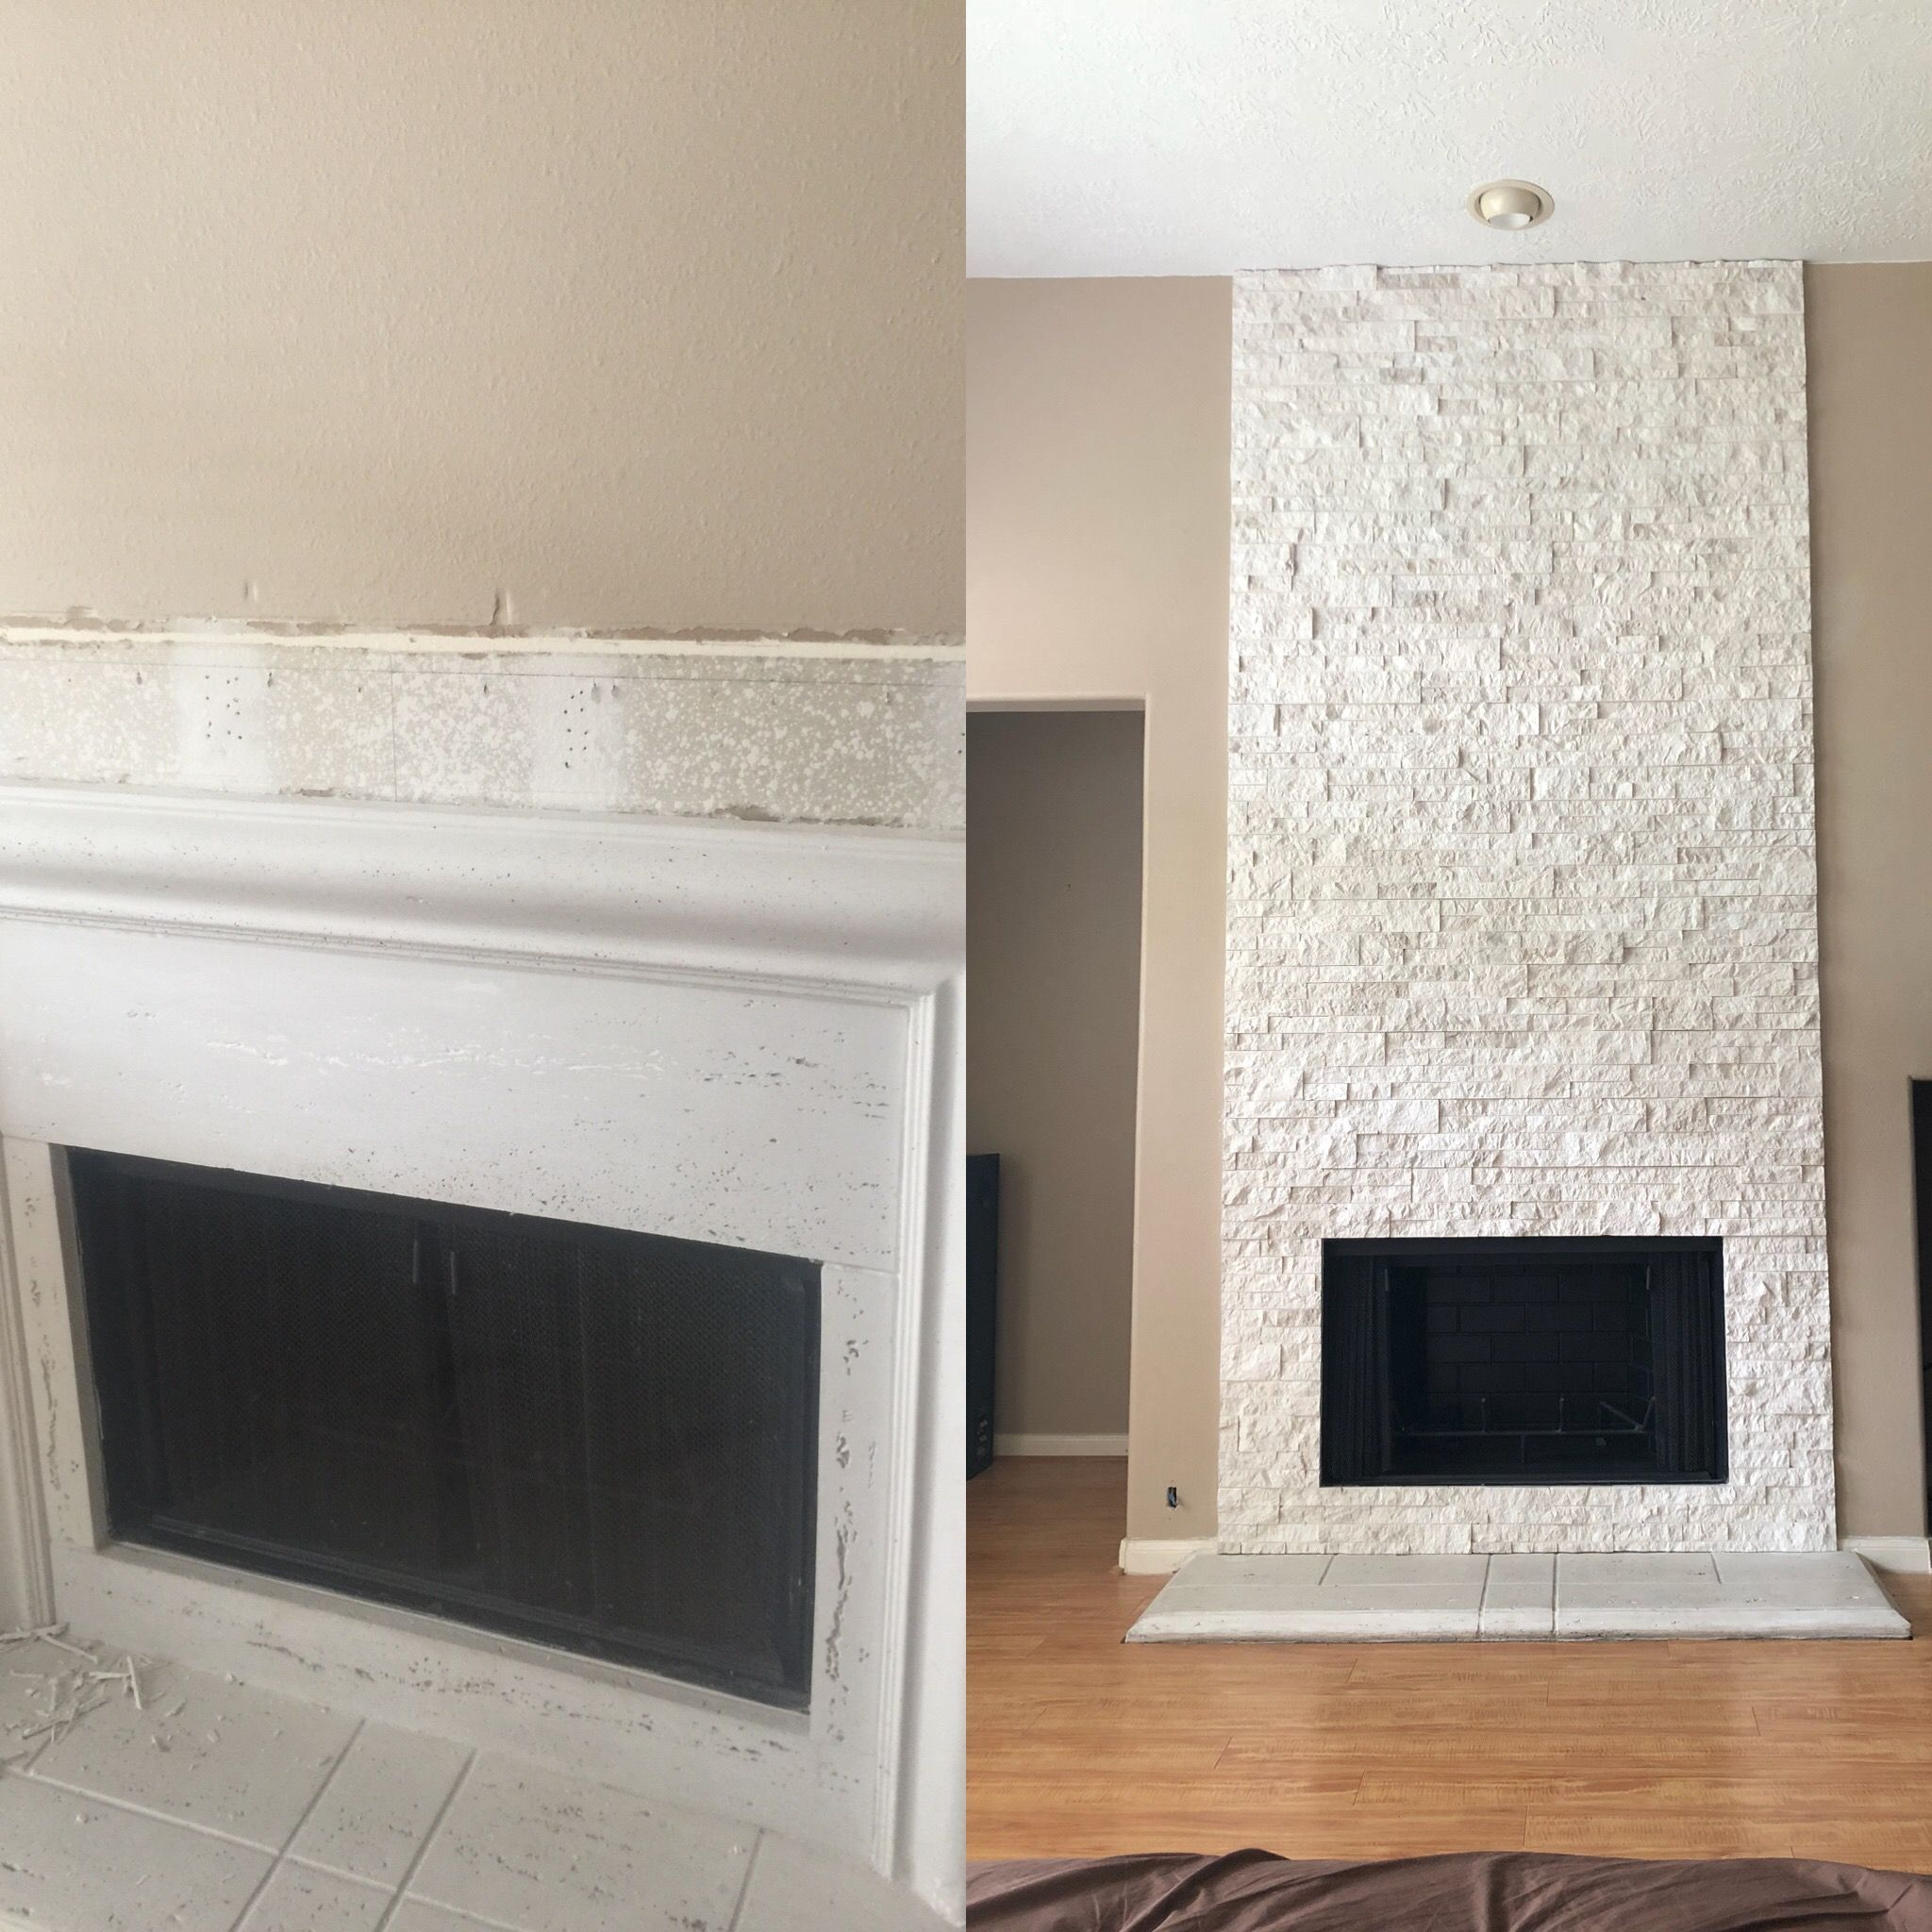 Before and after replaced a concrete fireplace surround